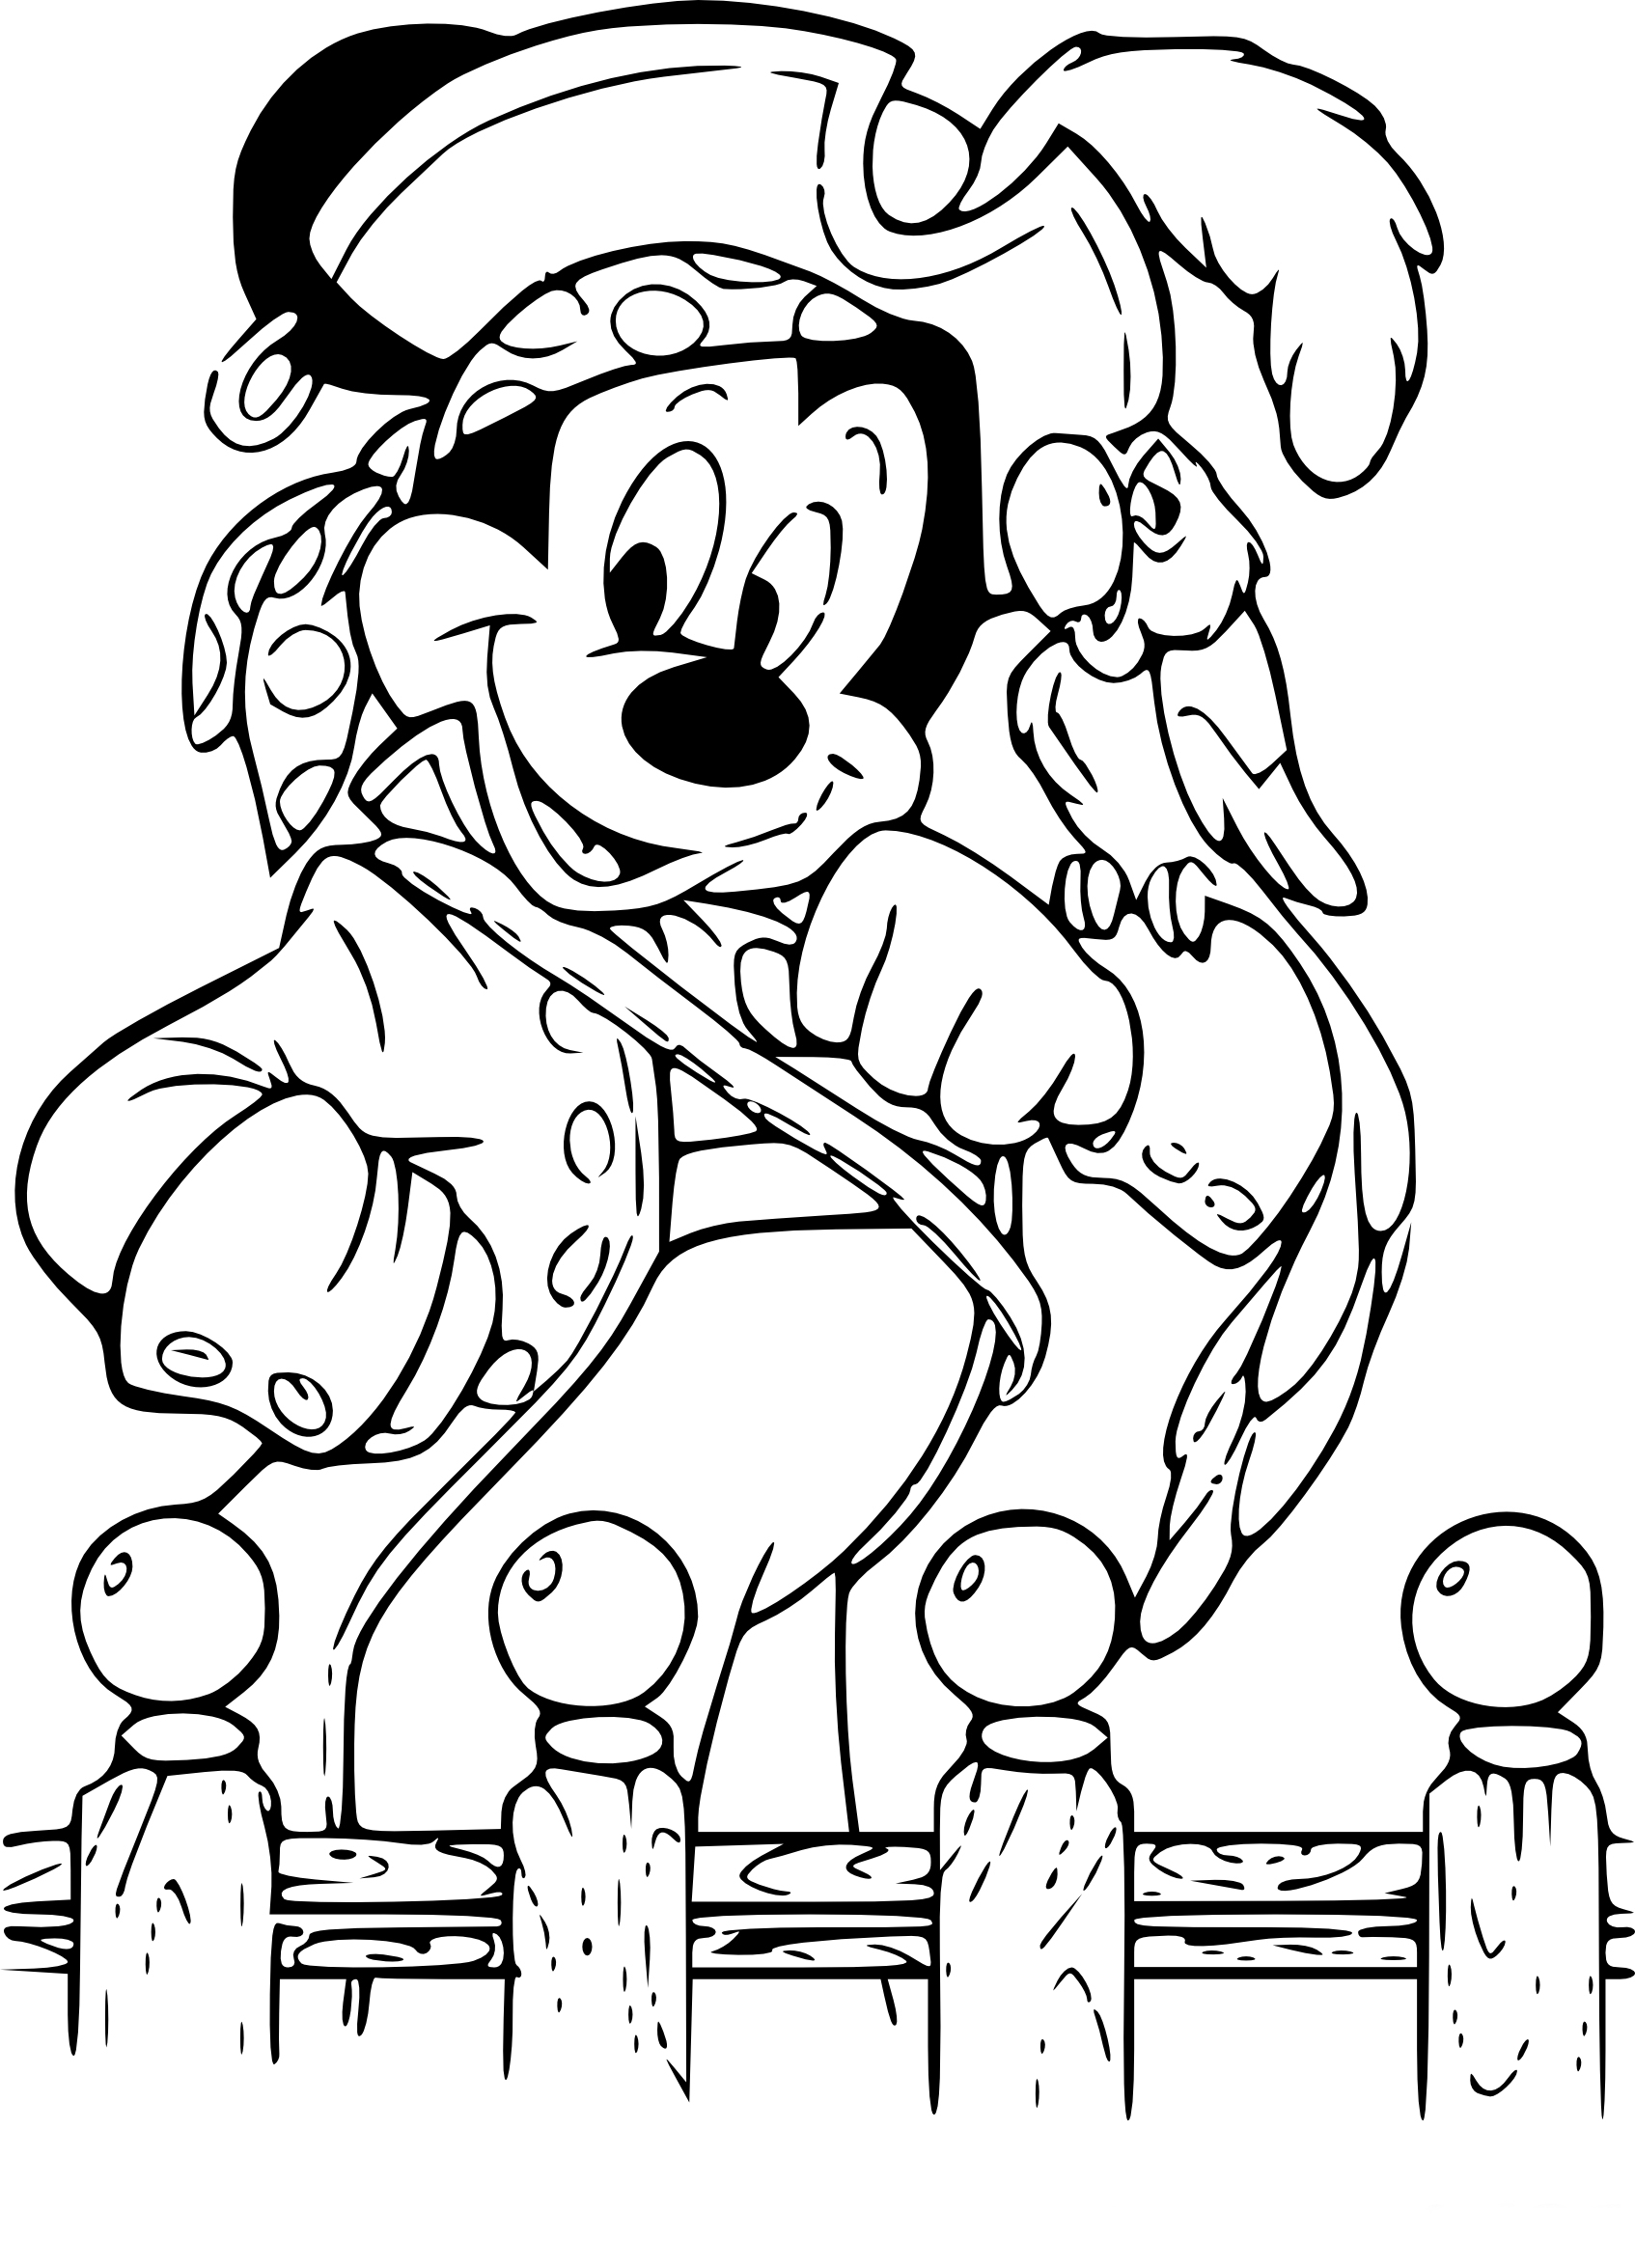 Nijntje Kleurplaat Coloring Page Miffy Coloring Pages 33 intérieur Dessin À Colorier Mickey